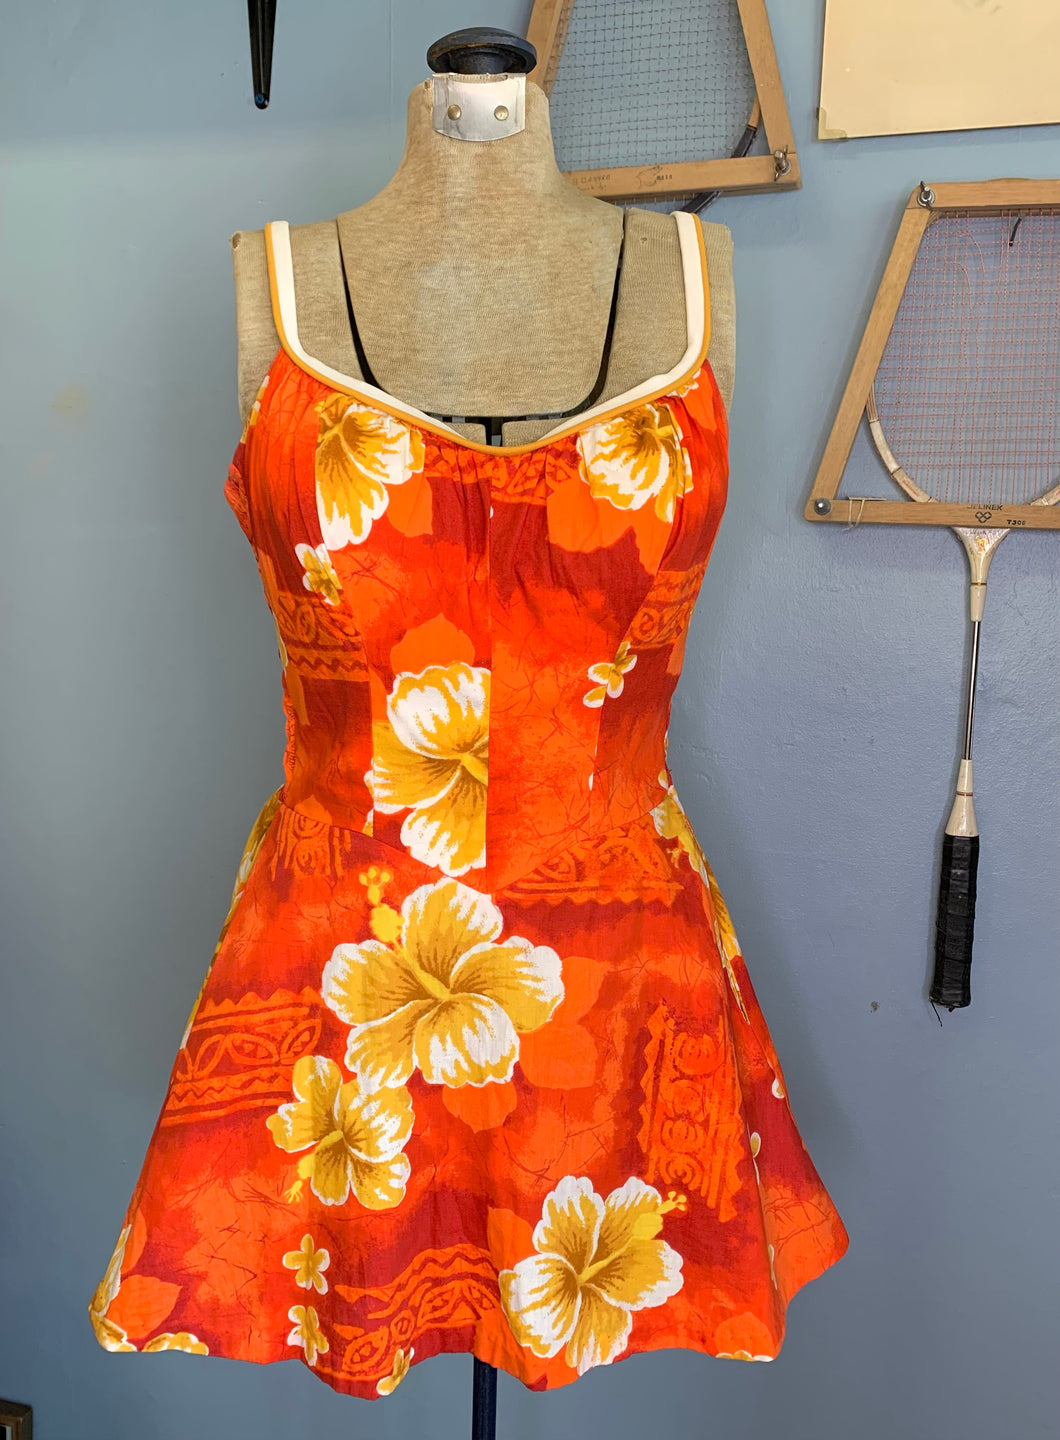 Vintage 60s Orange & Red Hawaiian Swim Dress/Playsuit, De Weese Design